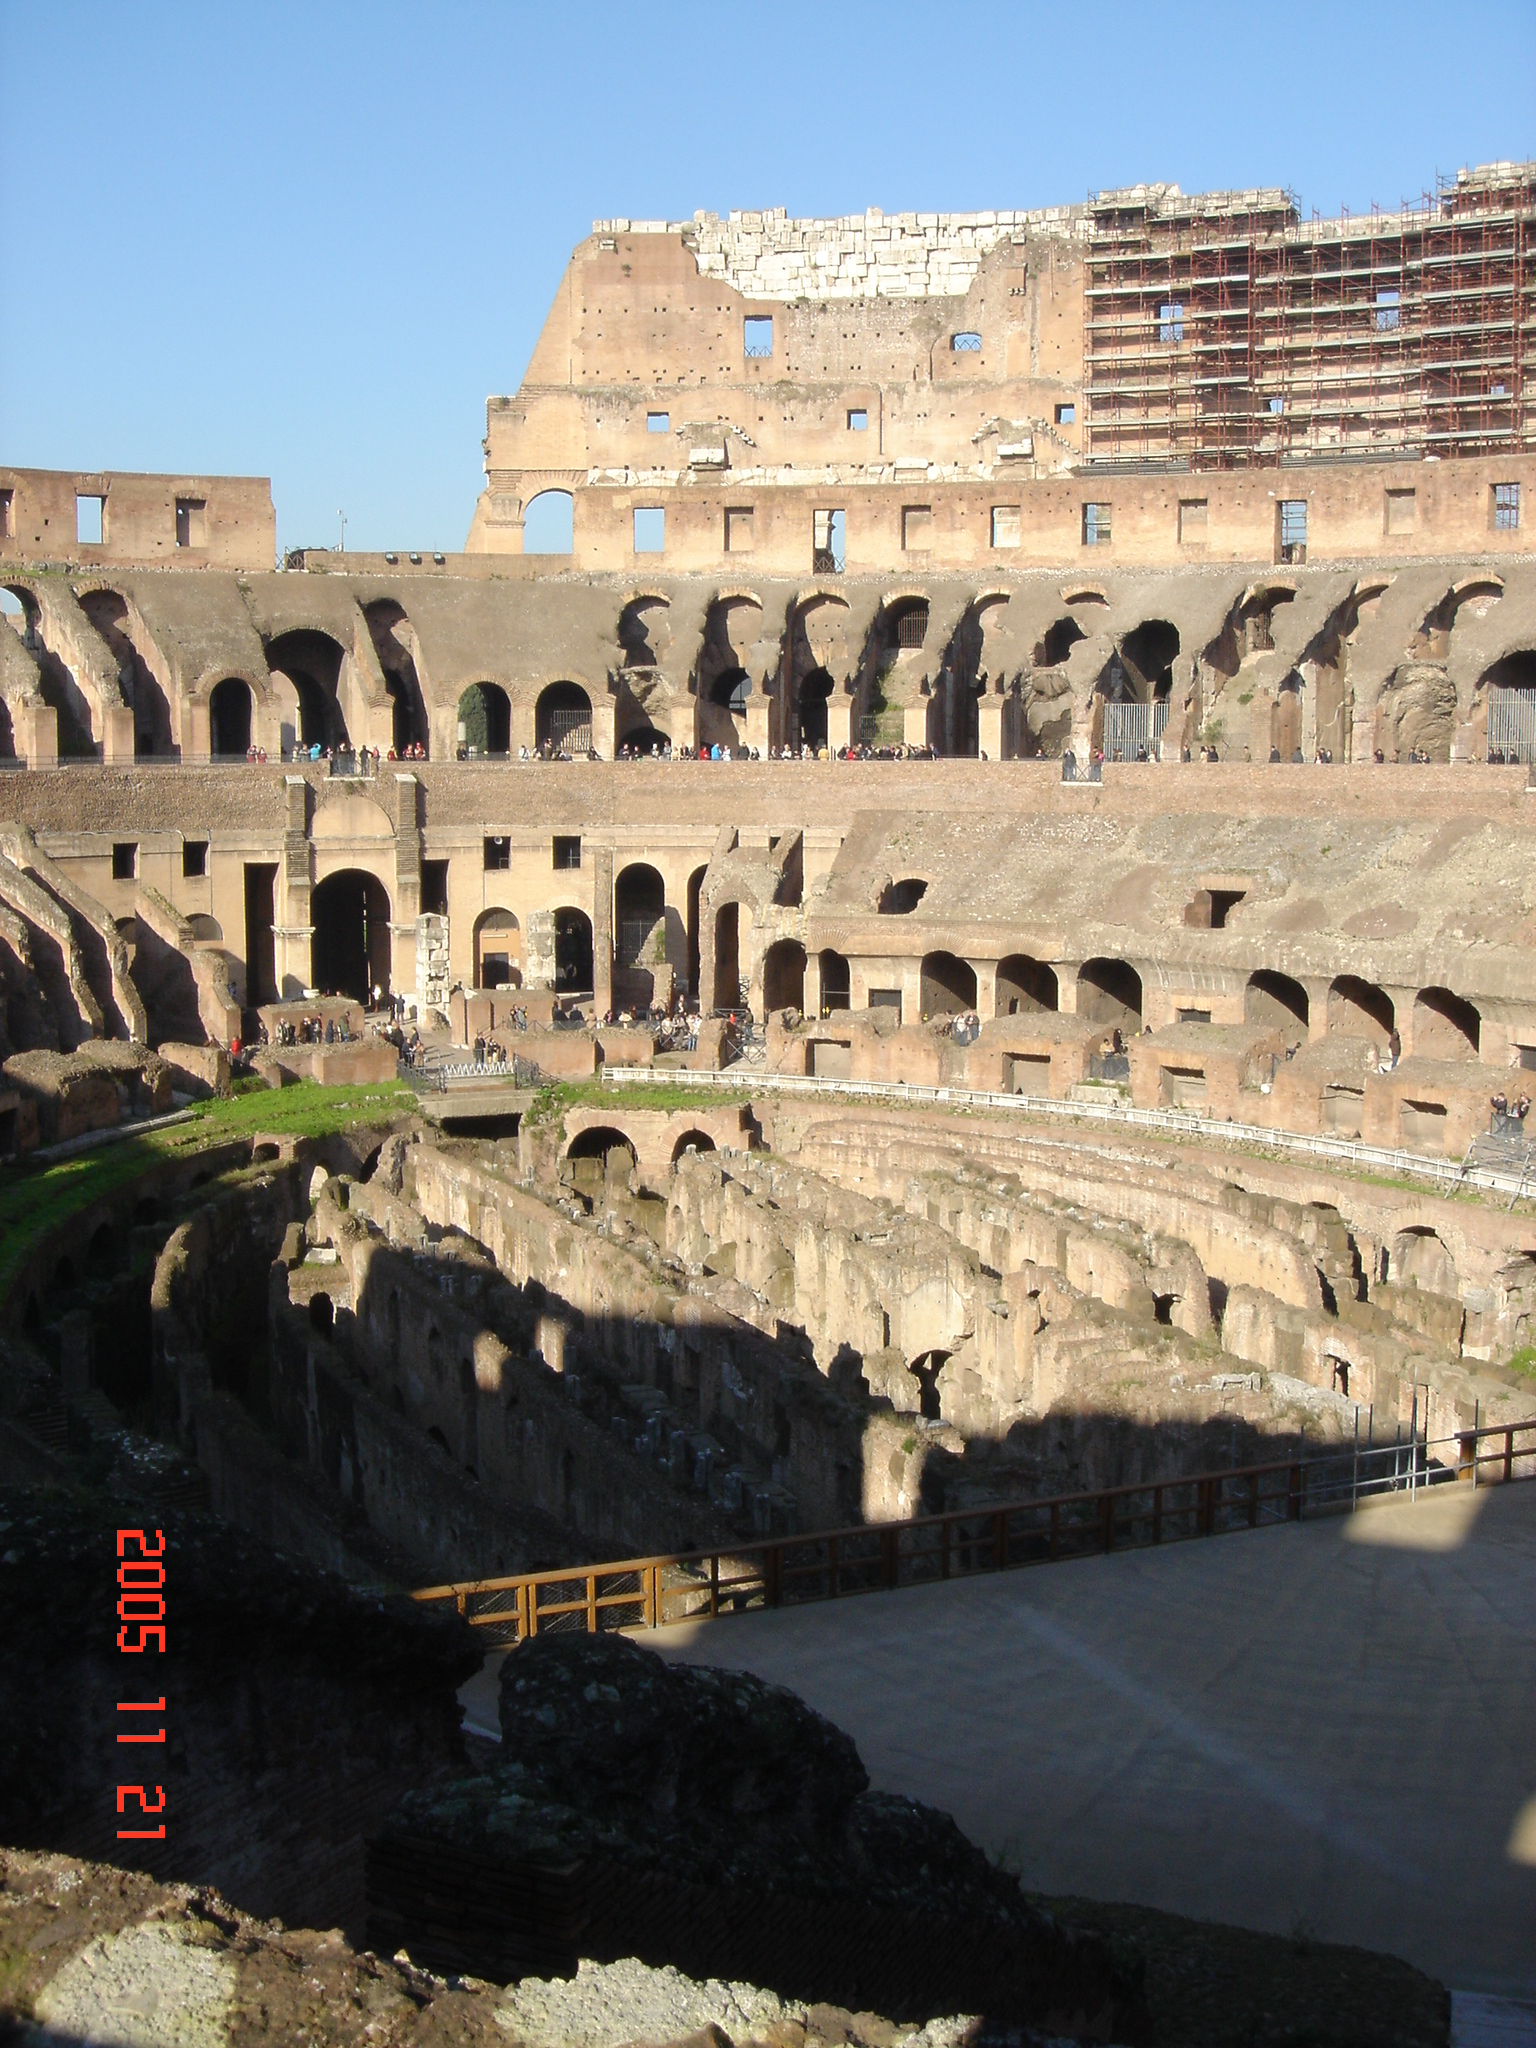 Colosseum, Rome - Gamesforlanguage.com